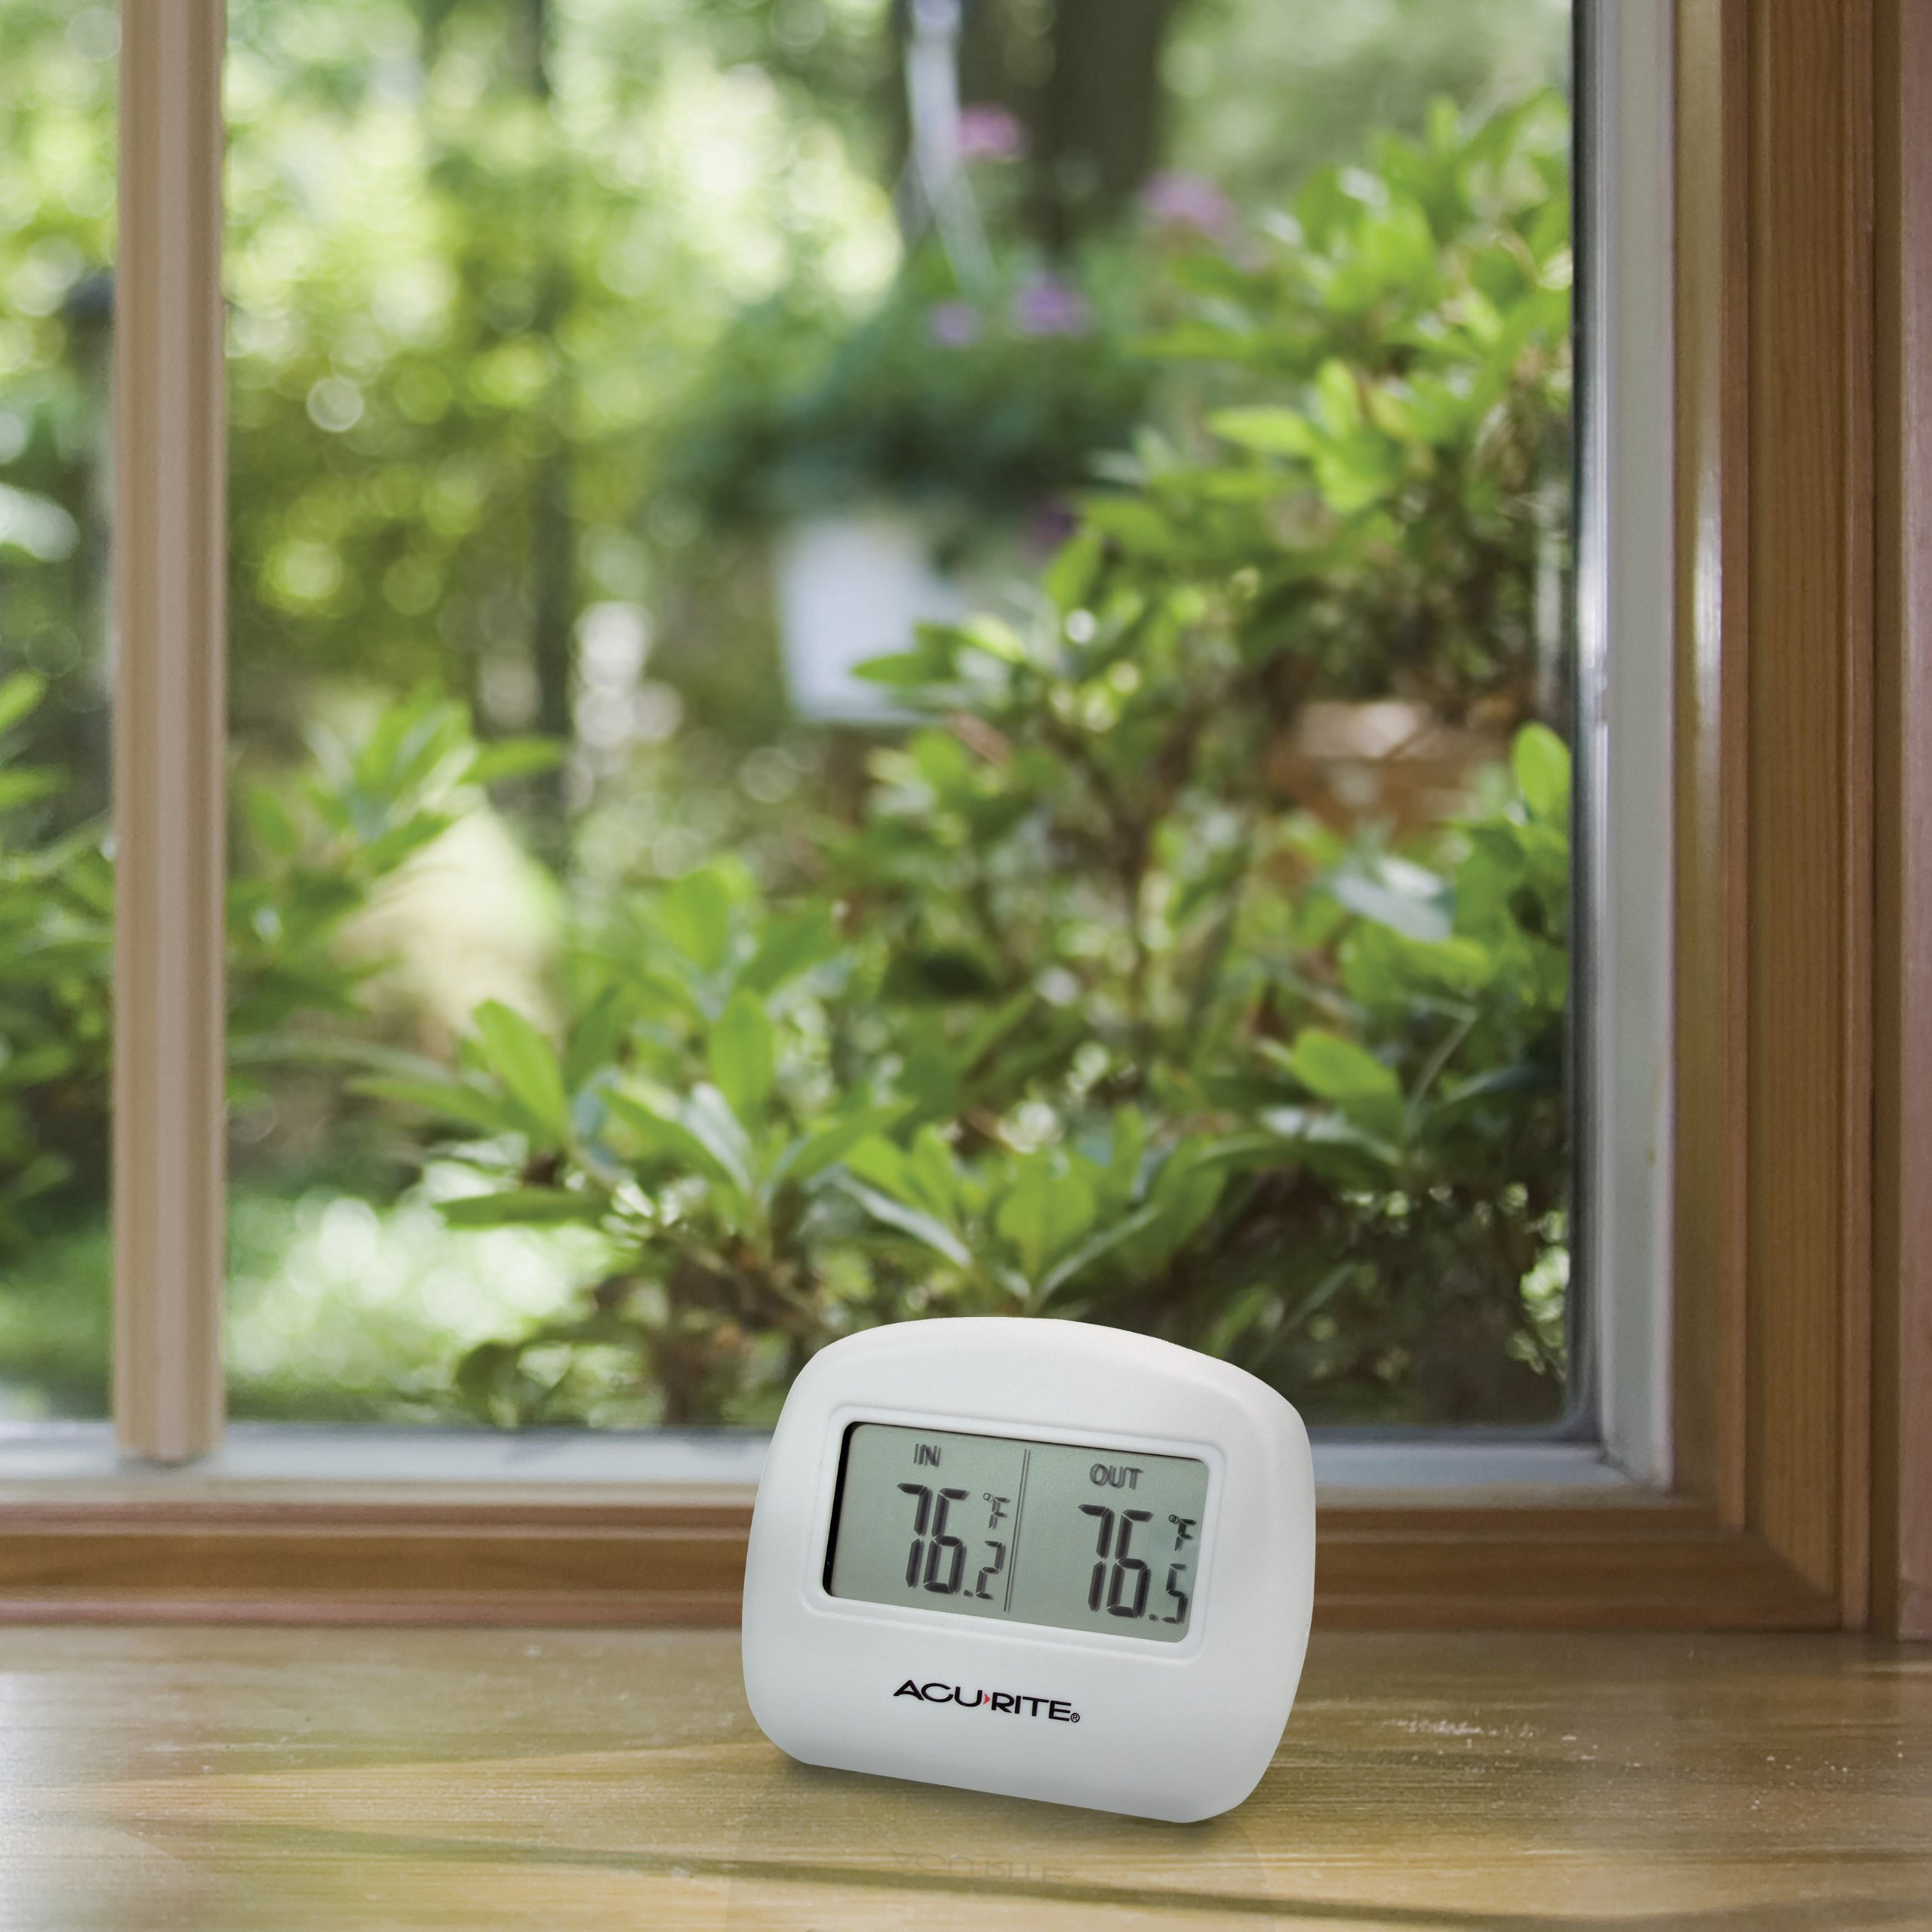 AcuRite 00782A2 Wireless Indoor/Outdoor Thermometer by AcuRite